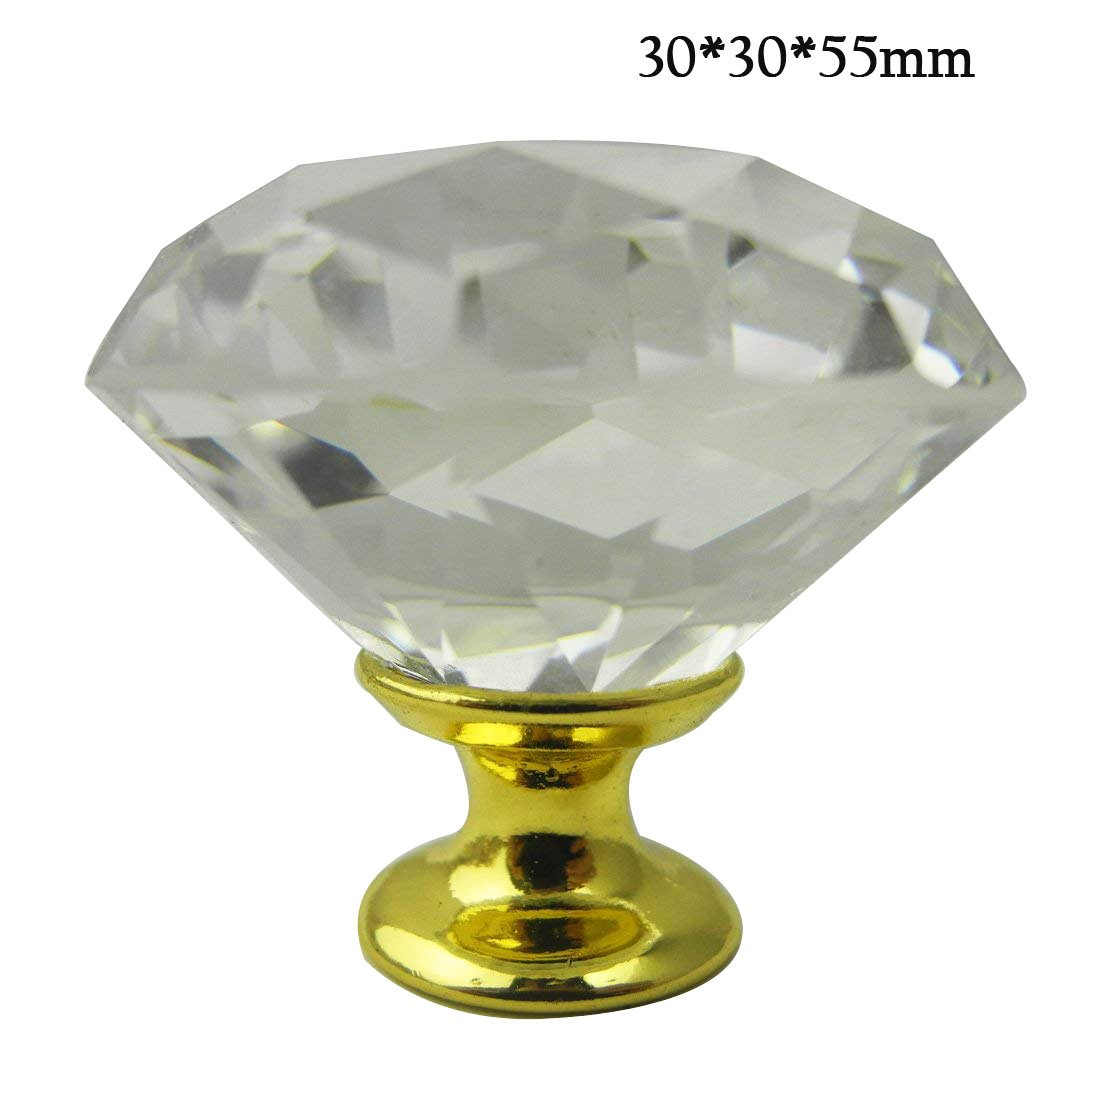 Calcifer 12pcs Diamond Shape Crystal Glass Drawer Knob Pull Handle Usd for Caebinet, Drawer,Door, Wardrobe (30 * 30 * 55mm)